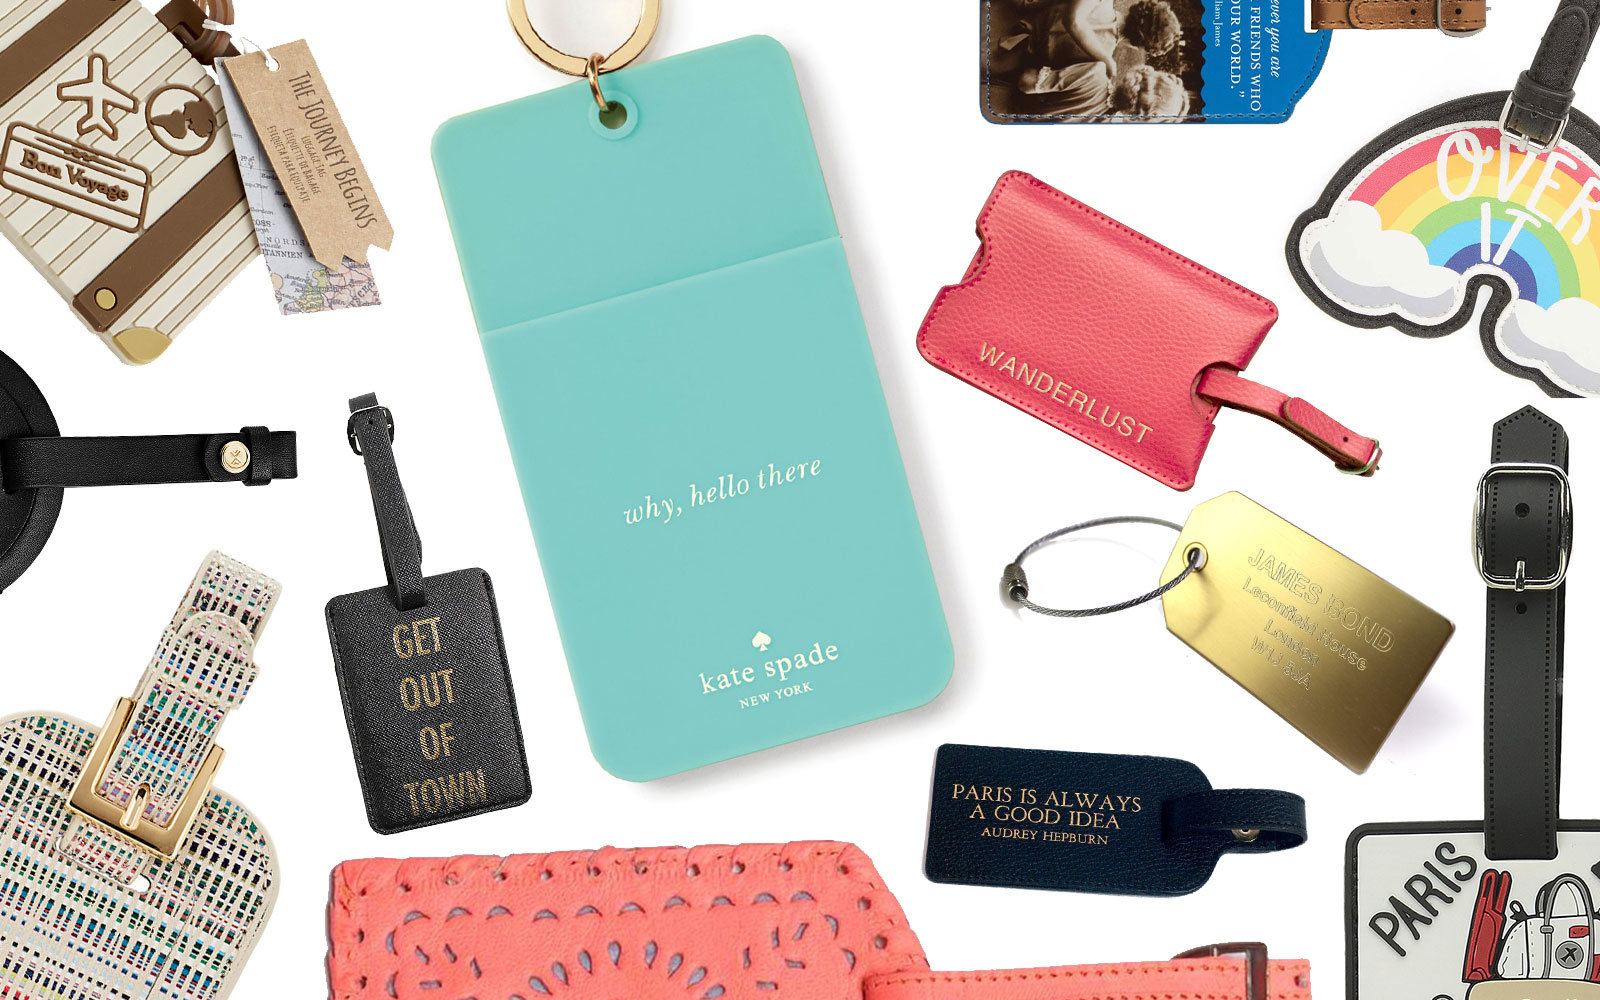 Luggage Tags So You Can Spot Your Bag